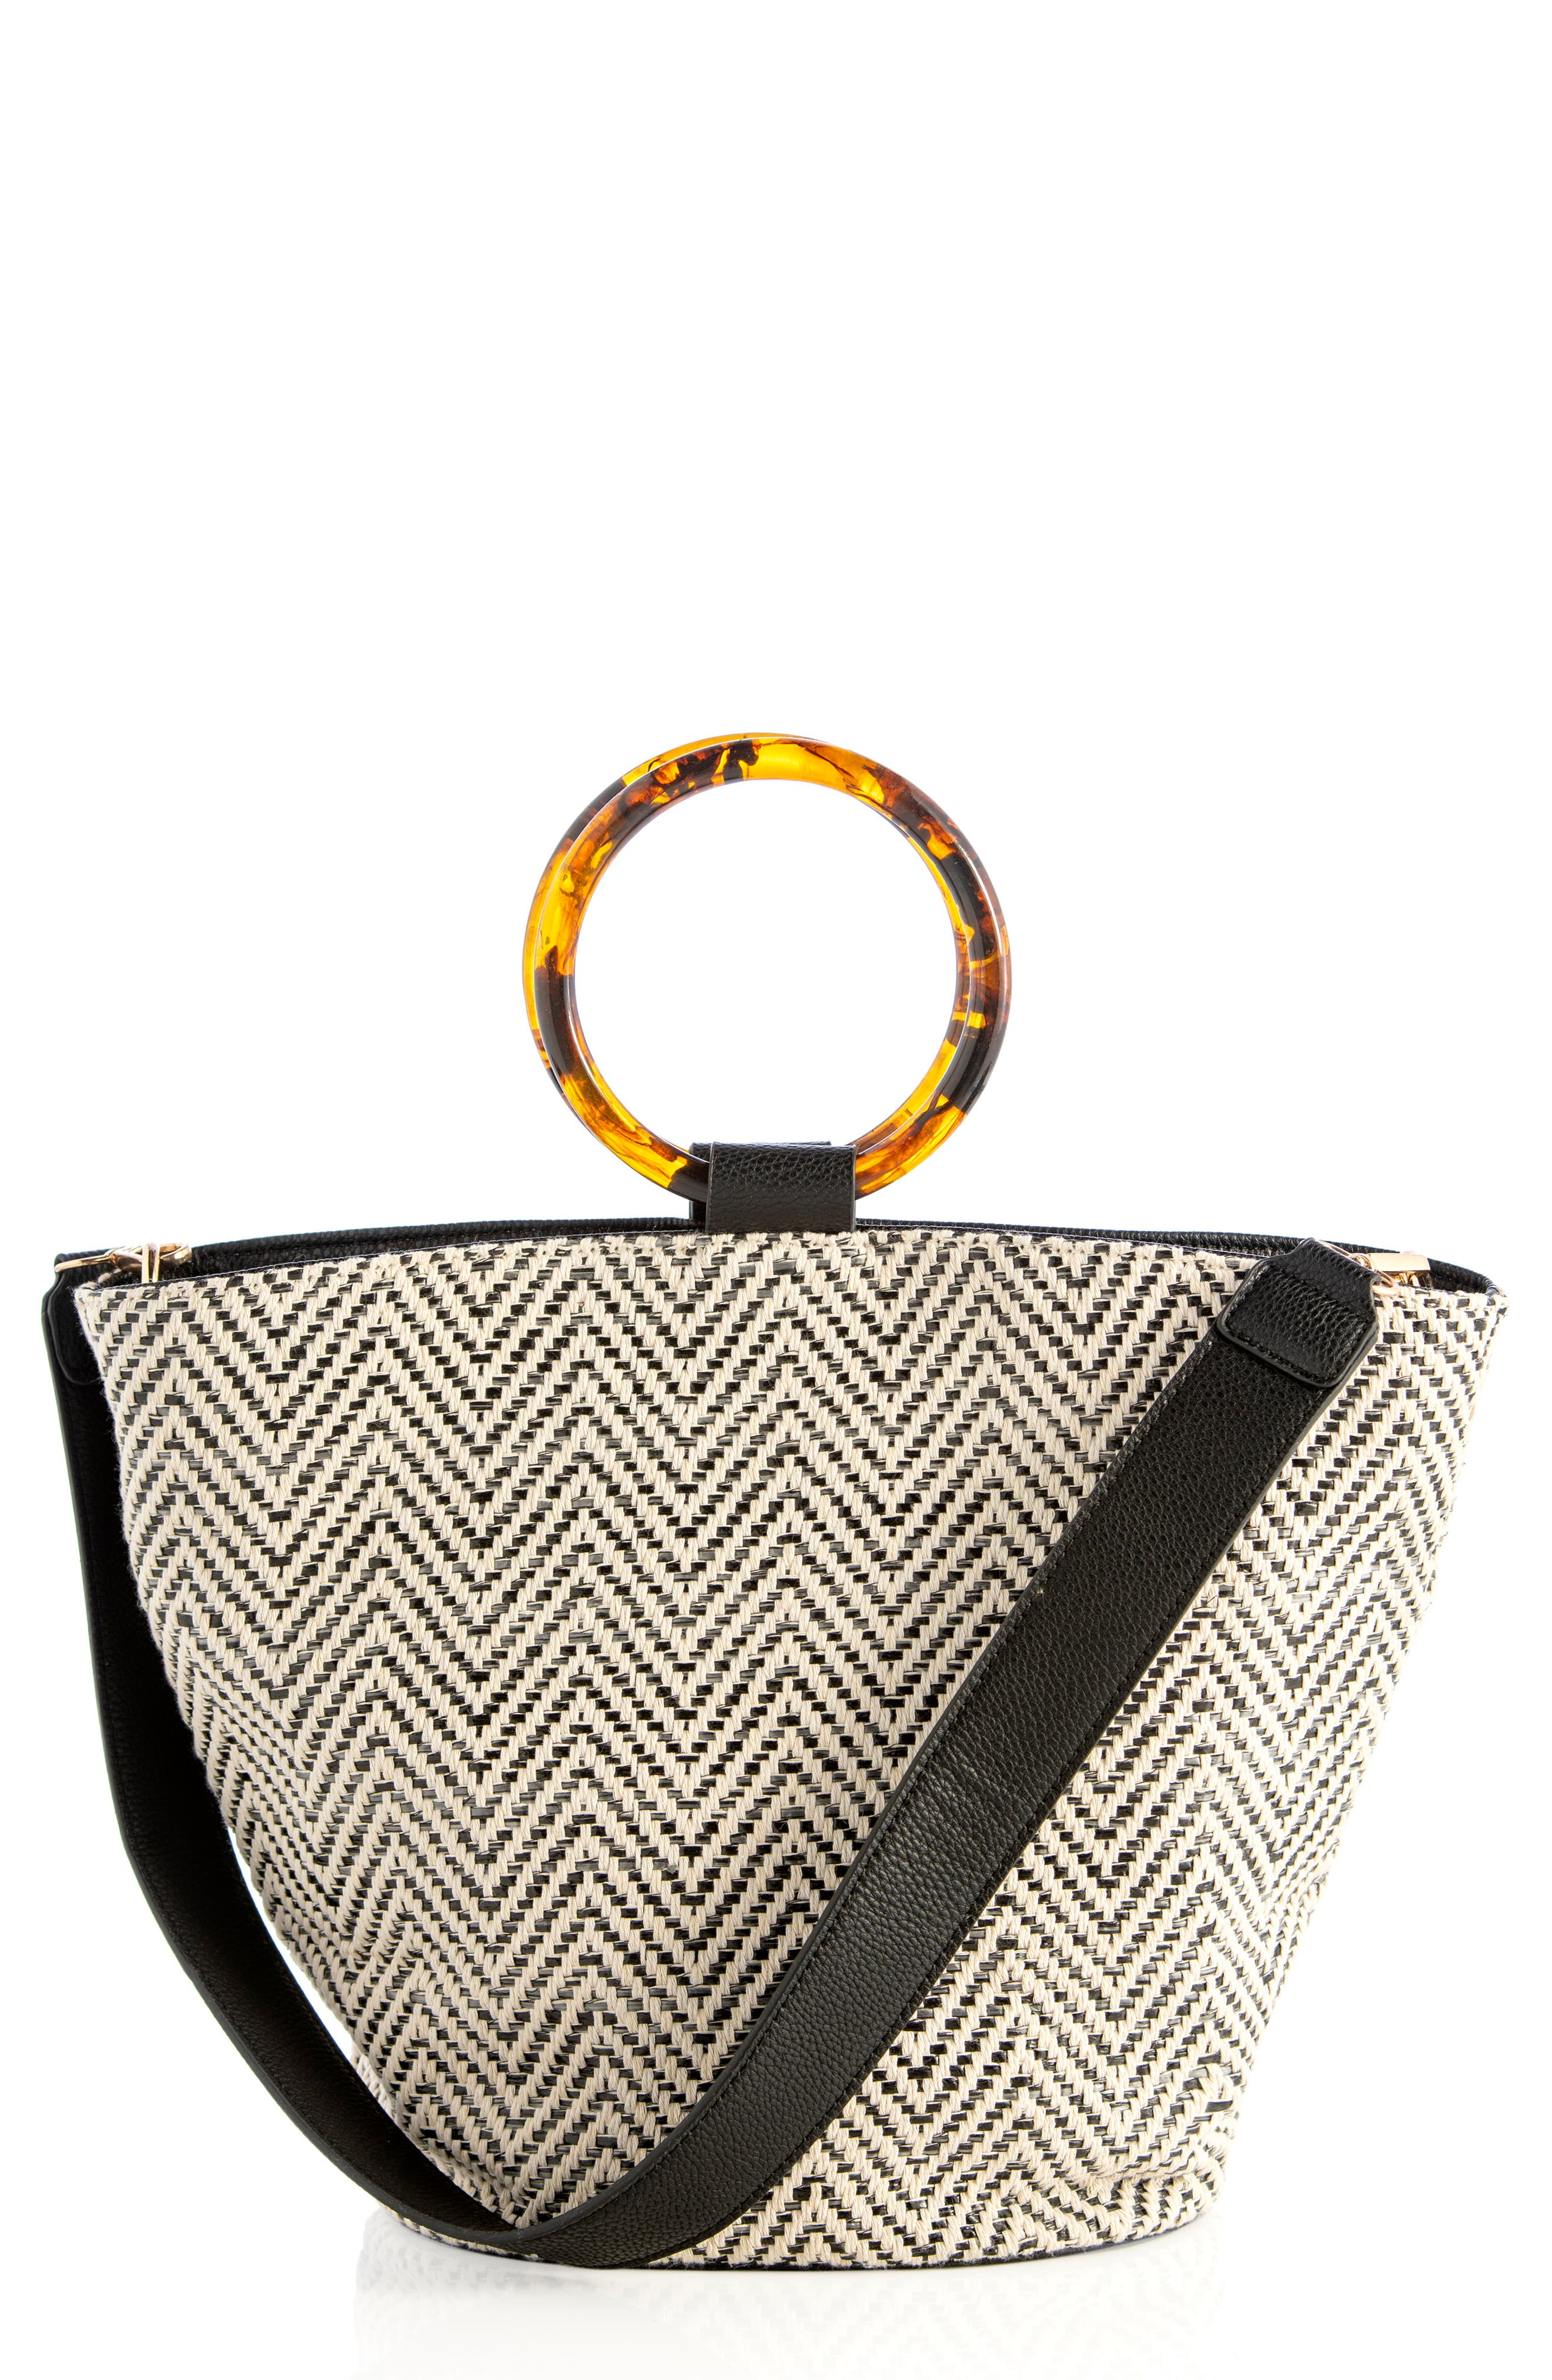 Glossy ring handles and a removable shoulder strap bring styling versatility to a spacious tote featuring a striking two-tone weave. Style Name: Shiraleah Arbelle Ring Handle Woven Tote. Style Number: 6026060. Available in stores.